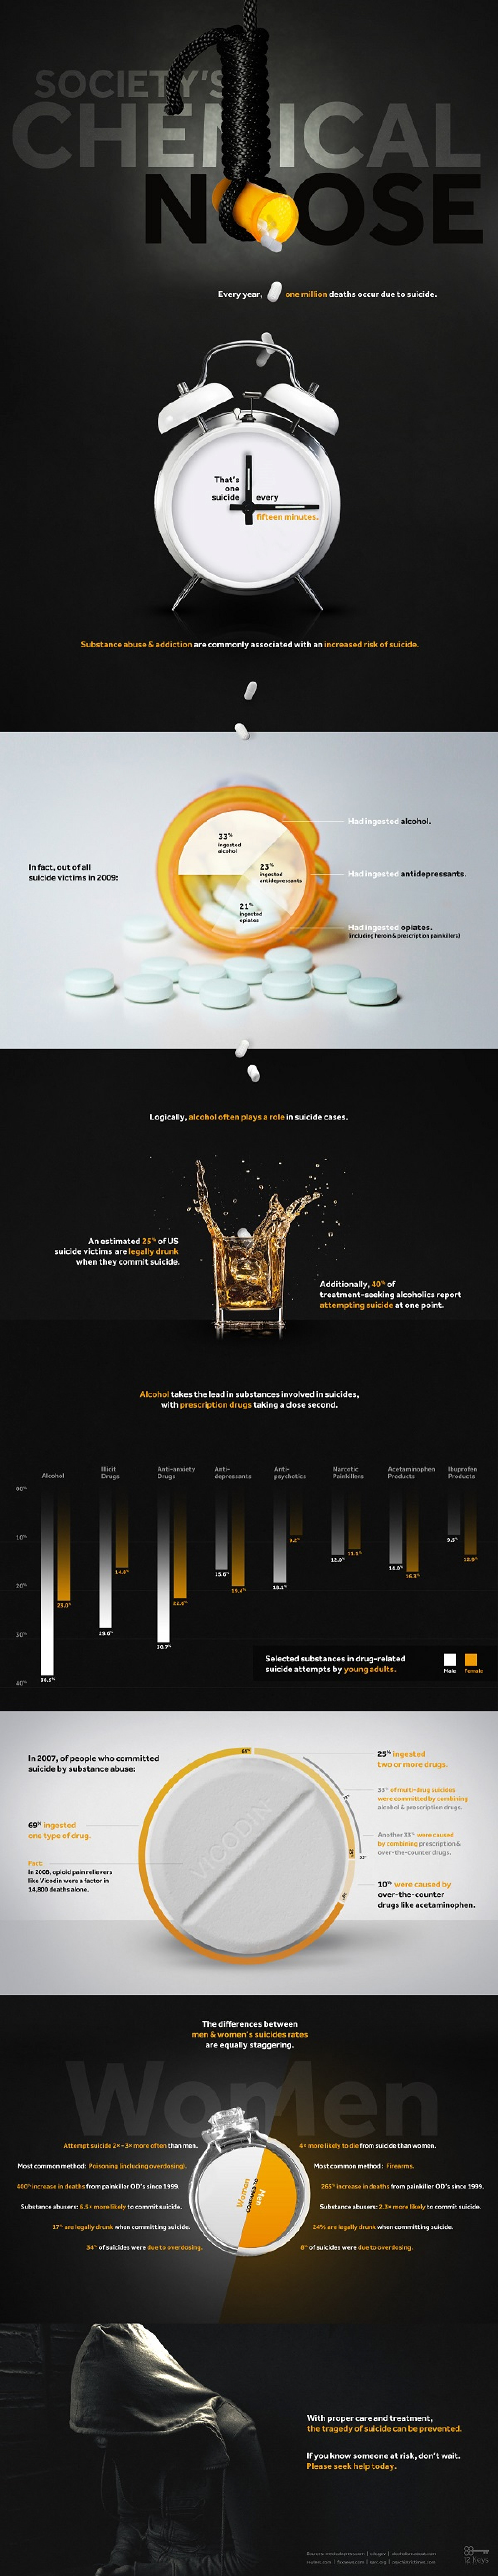 Society's Chemical Noose: A Look at Substance Abuse and Suicide Infographic